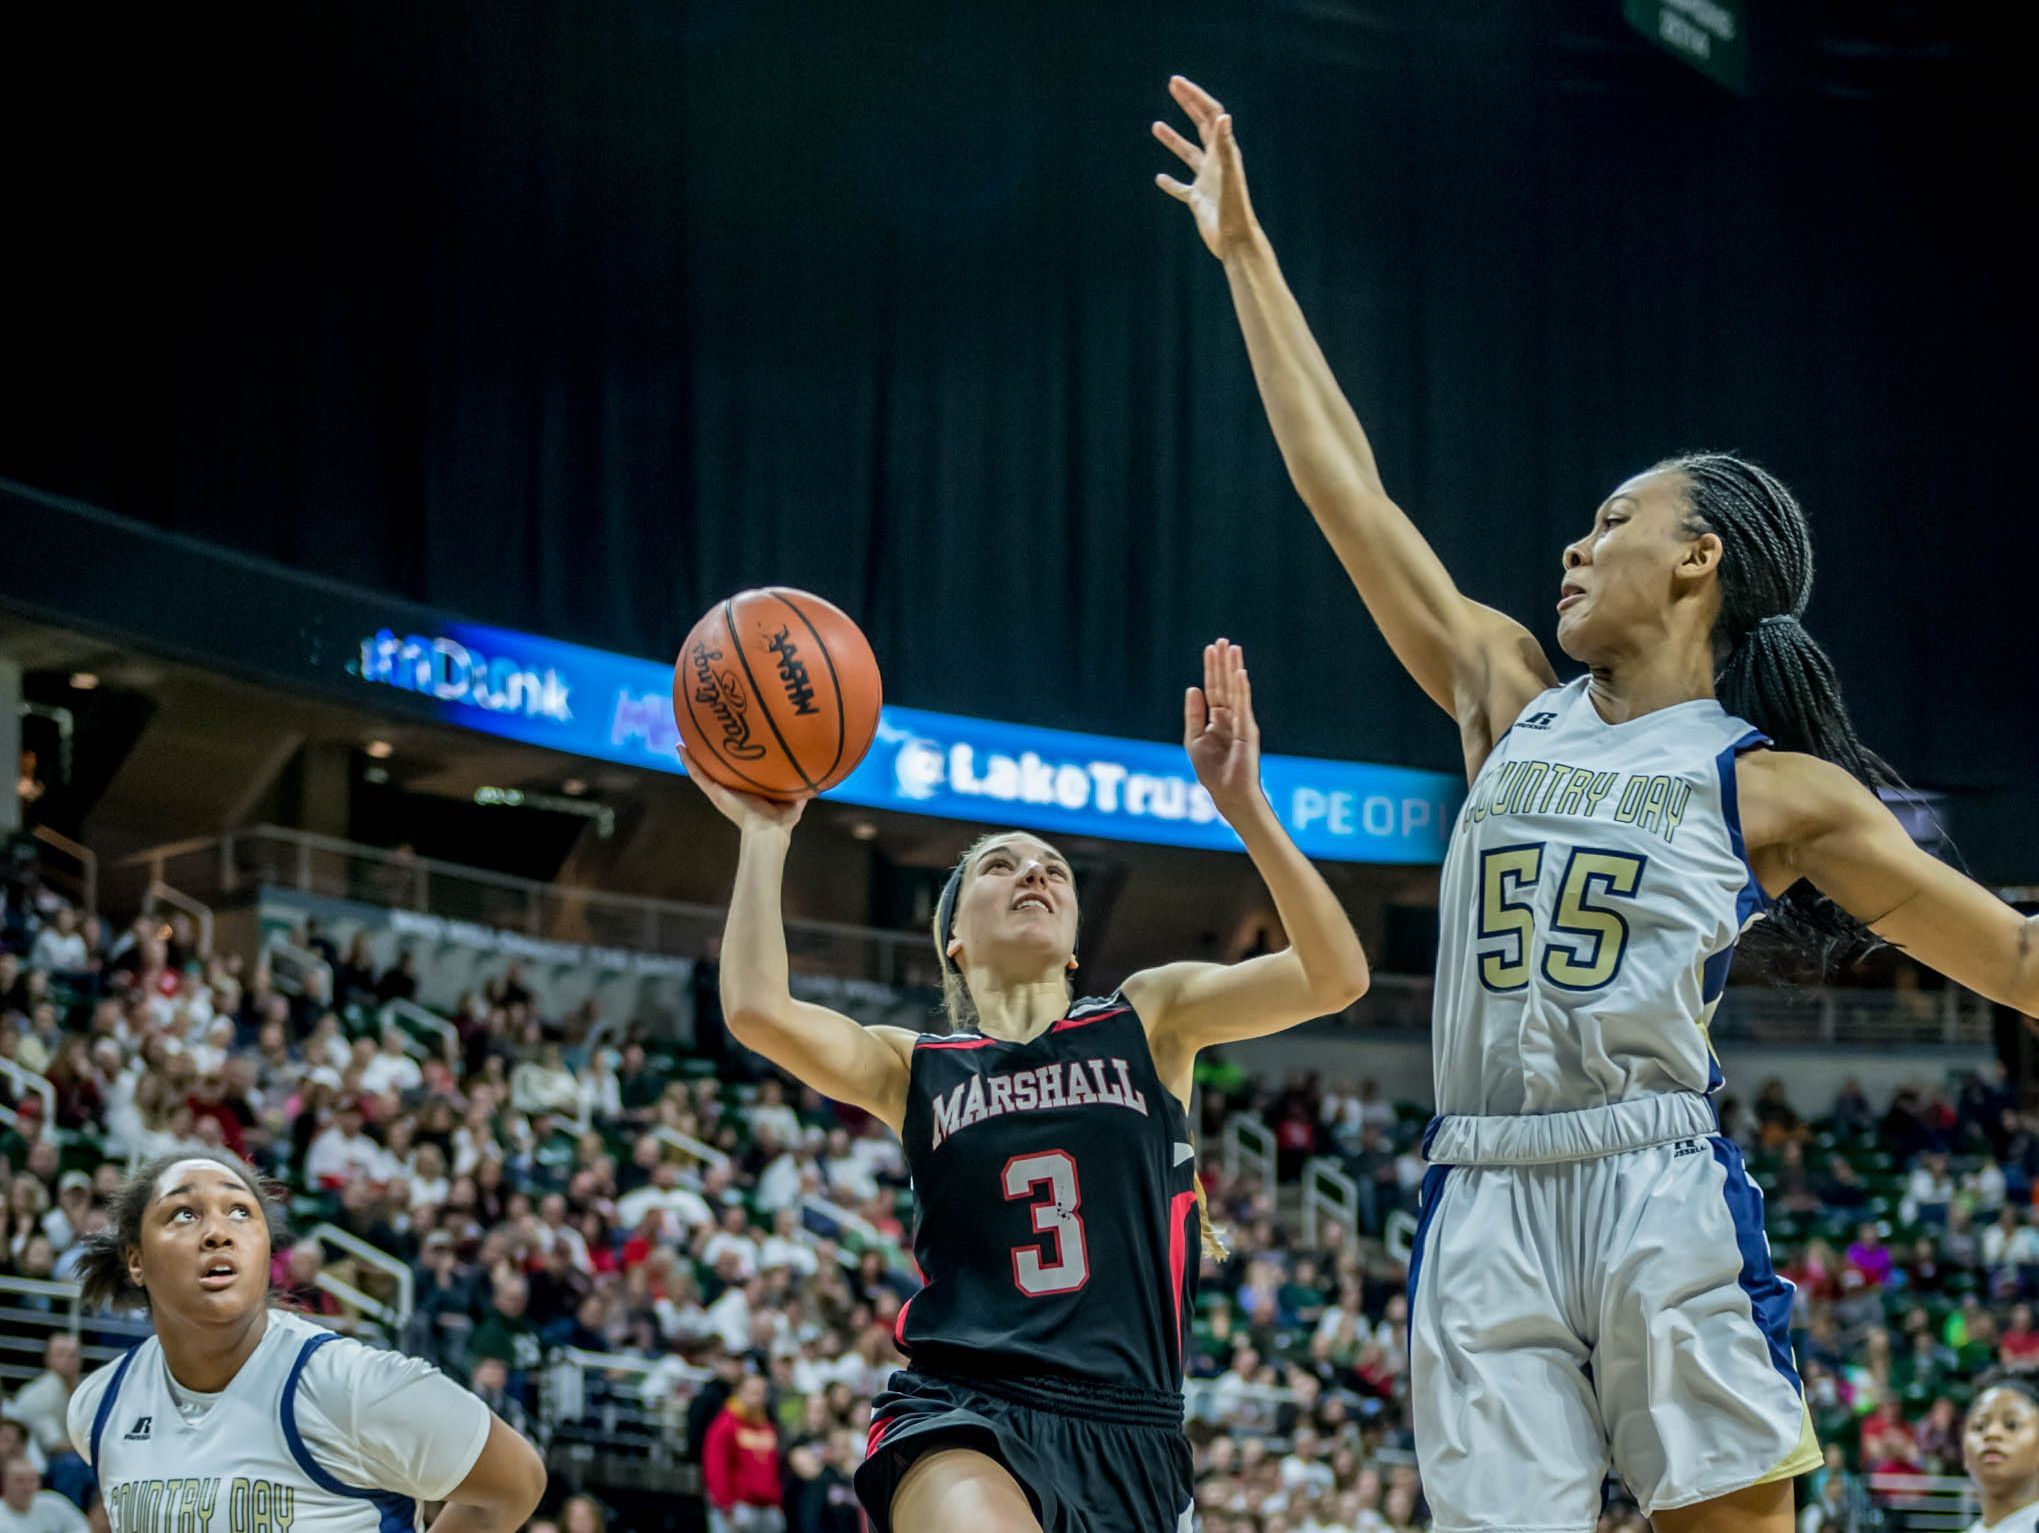 Marshall's Carlee Long (3) goes for the as Detroit Country Day's Tylar Bennett defends during the Class B state semifinal on Friday at the Breslin Center in East Lansing.